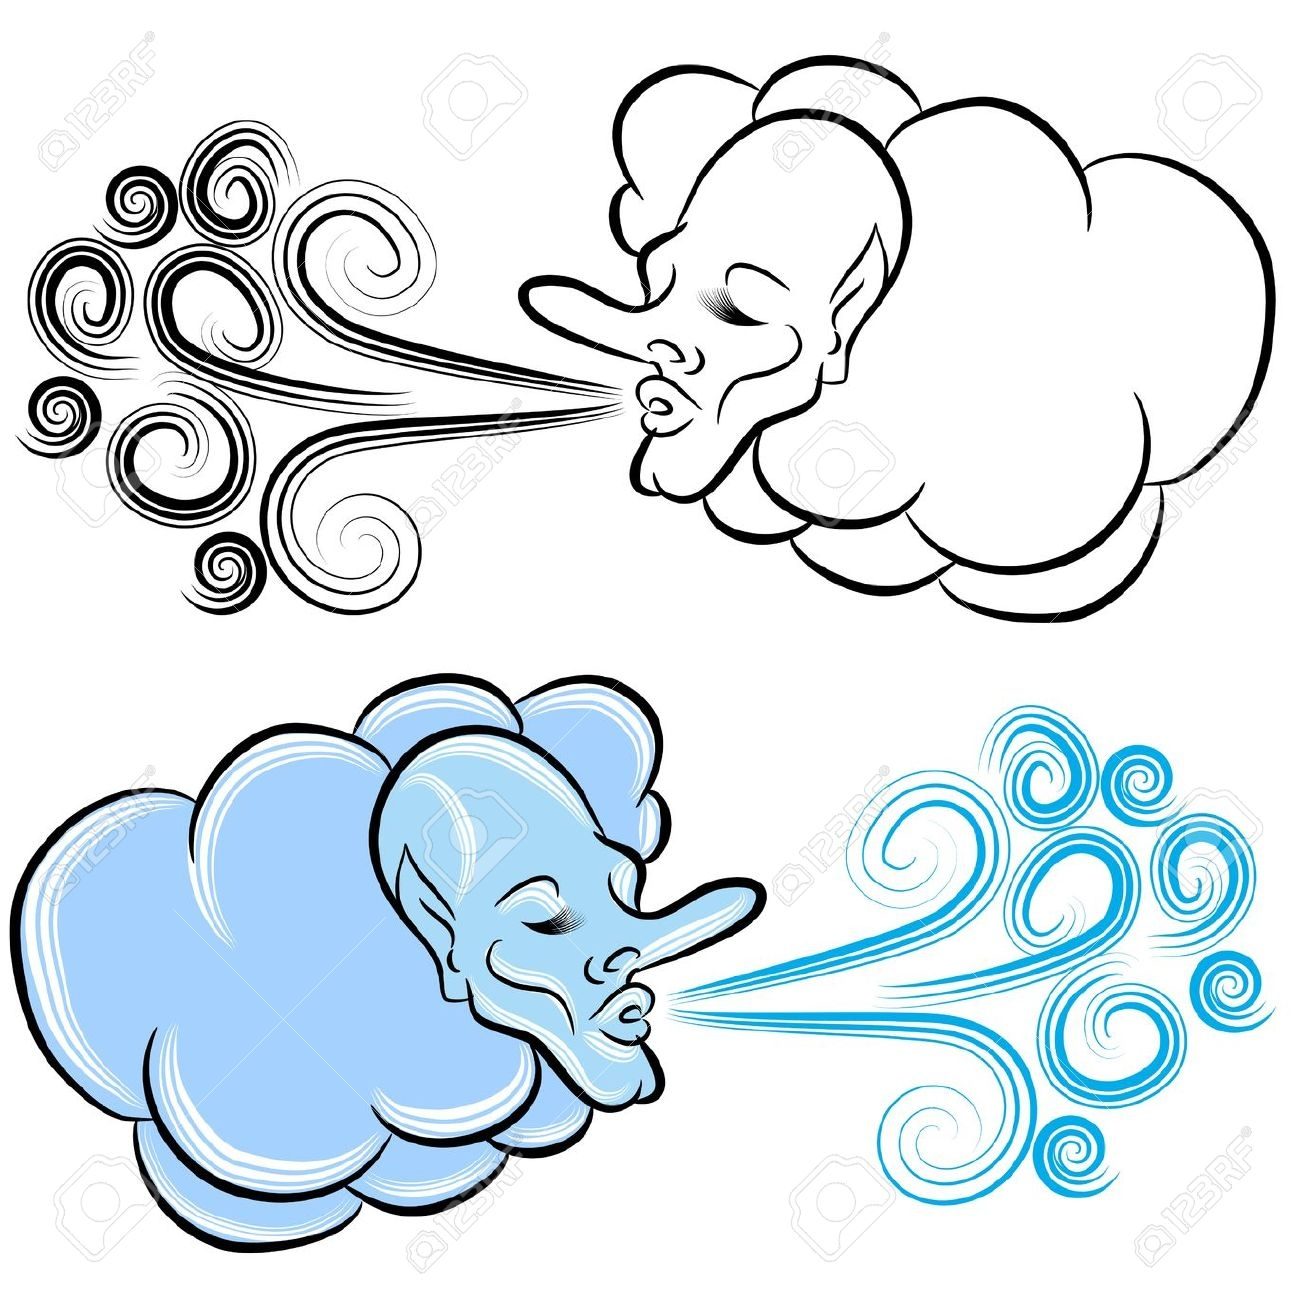 air clipart - 15 - d - Air cl - Air Clipart